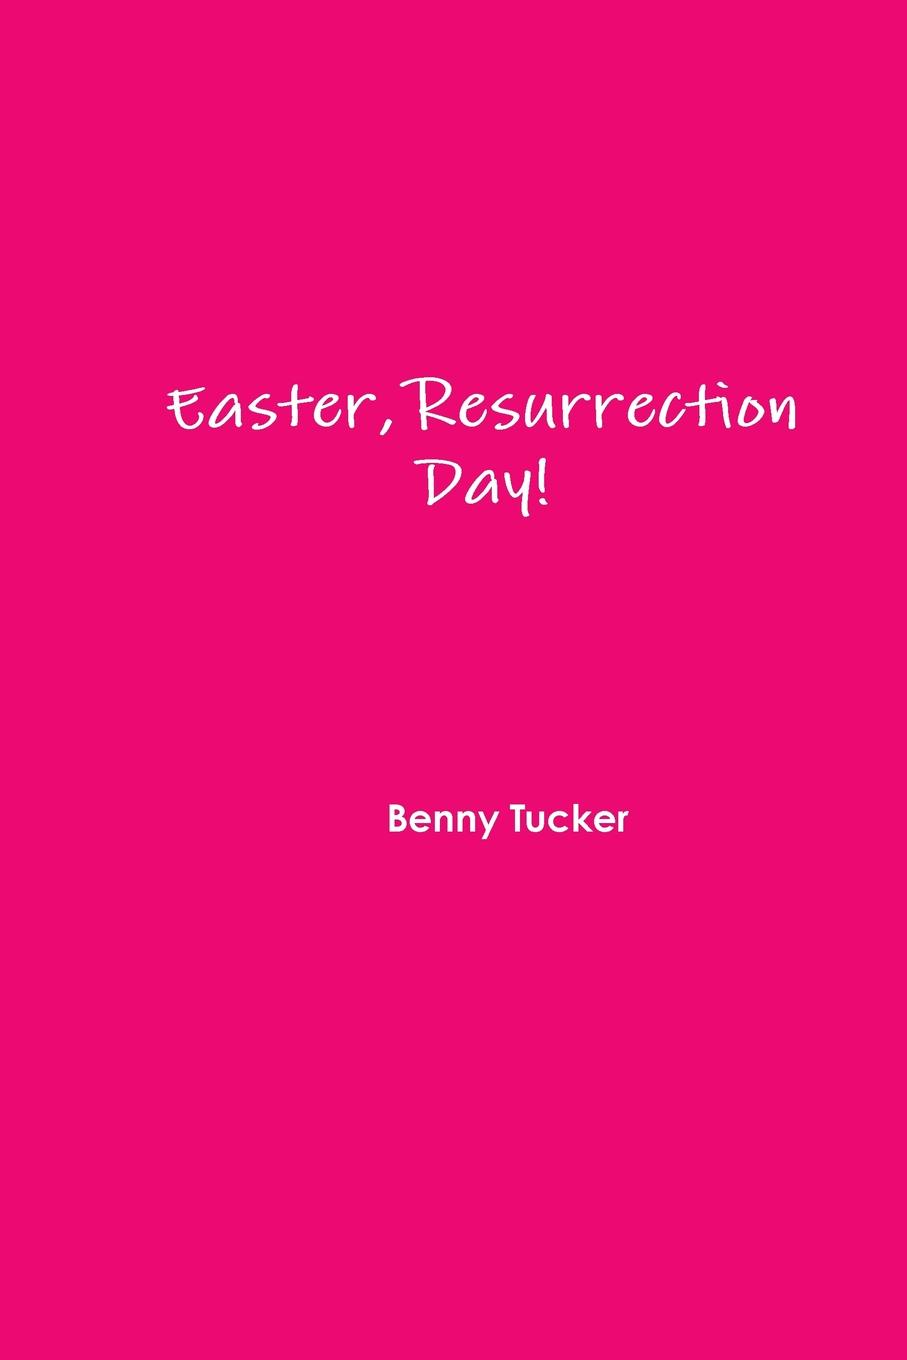 Benny Tucker Easter, Resurrection Day. thomas walla how i personally fell in love with god no strings attached